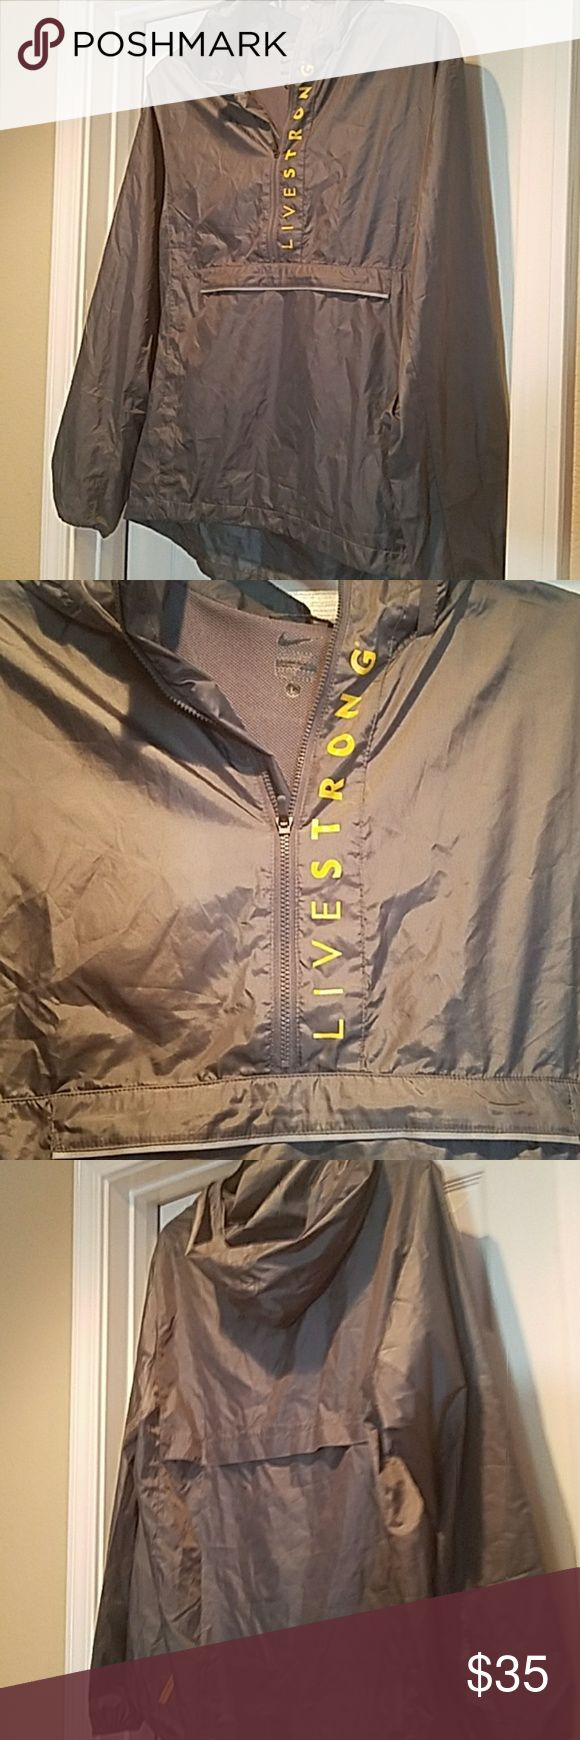 Nike Livestrong Windbreaker Nike Livestrong Windbreaker   Size:  large Preowned worn twice, no stains, no holes, smoke free home Nike Jackets & Coats Windbreakers